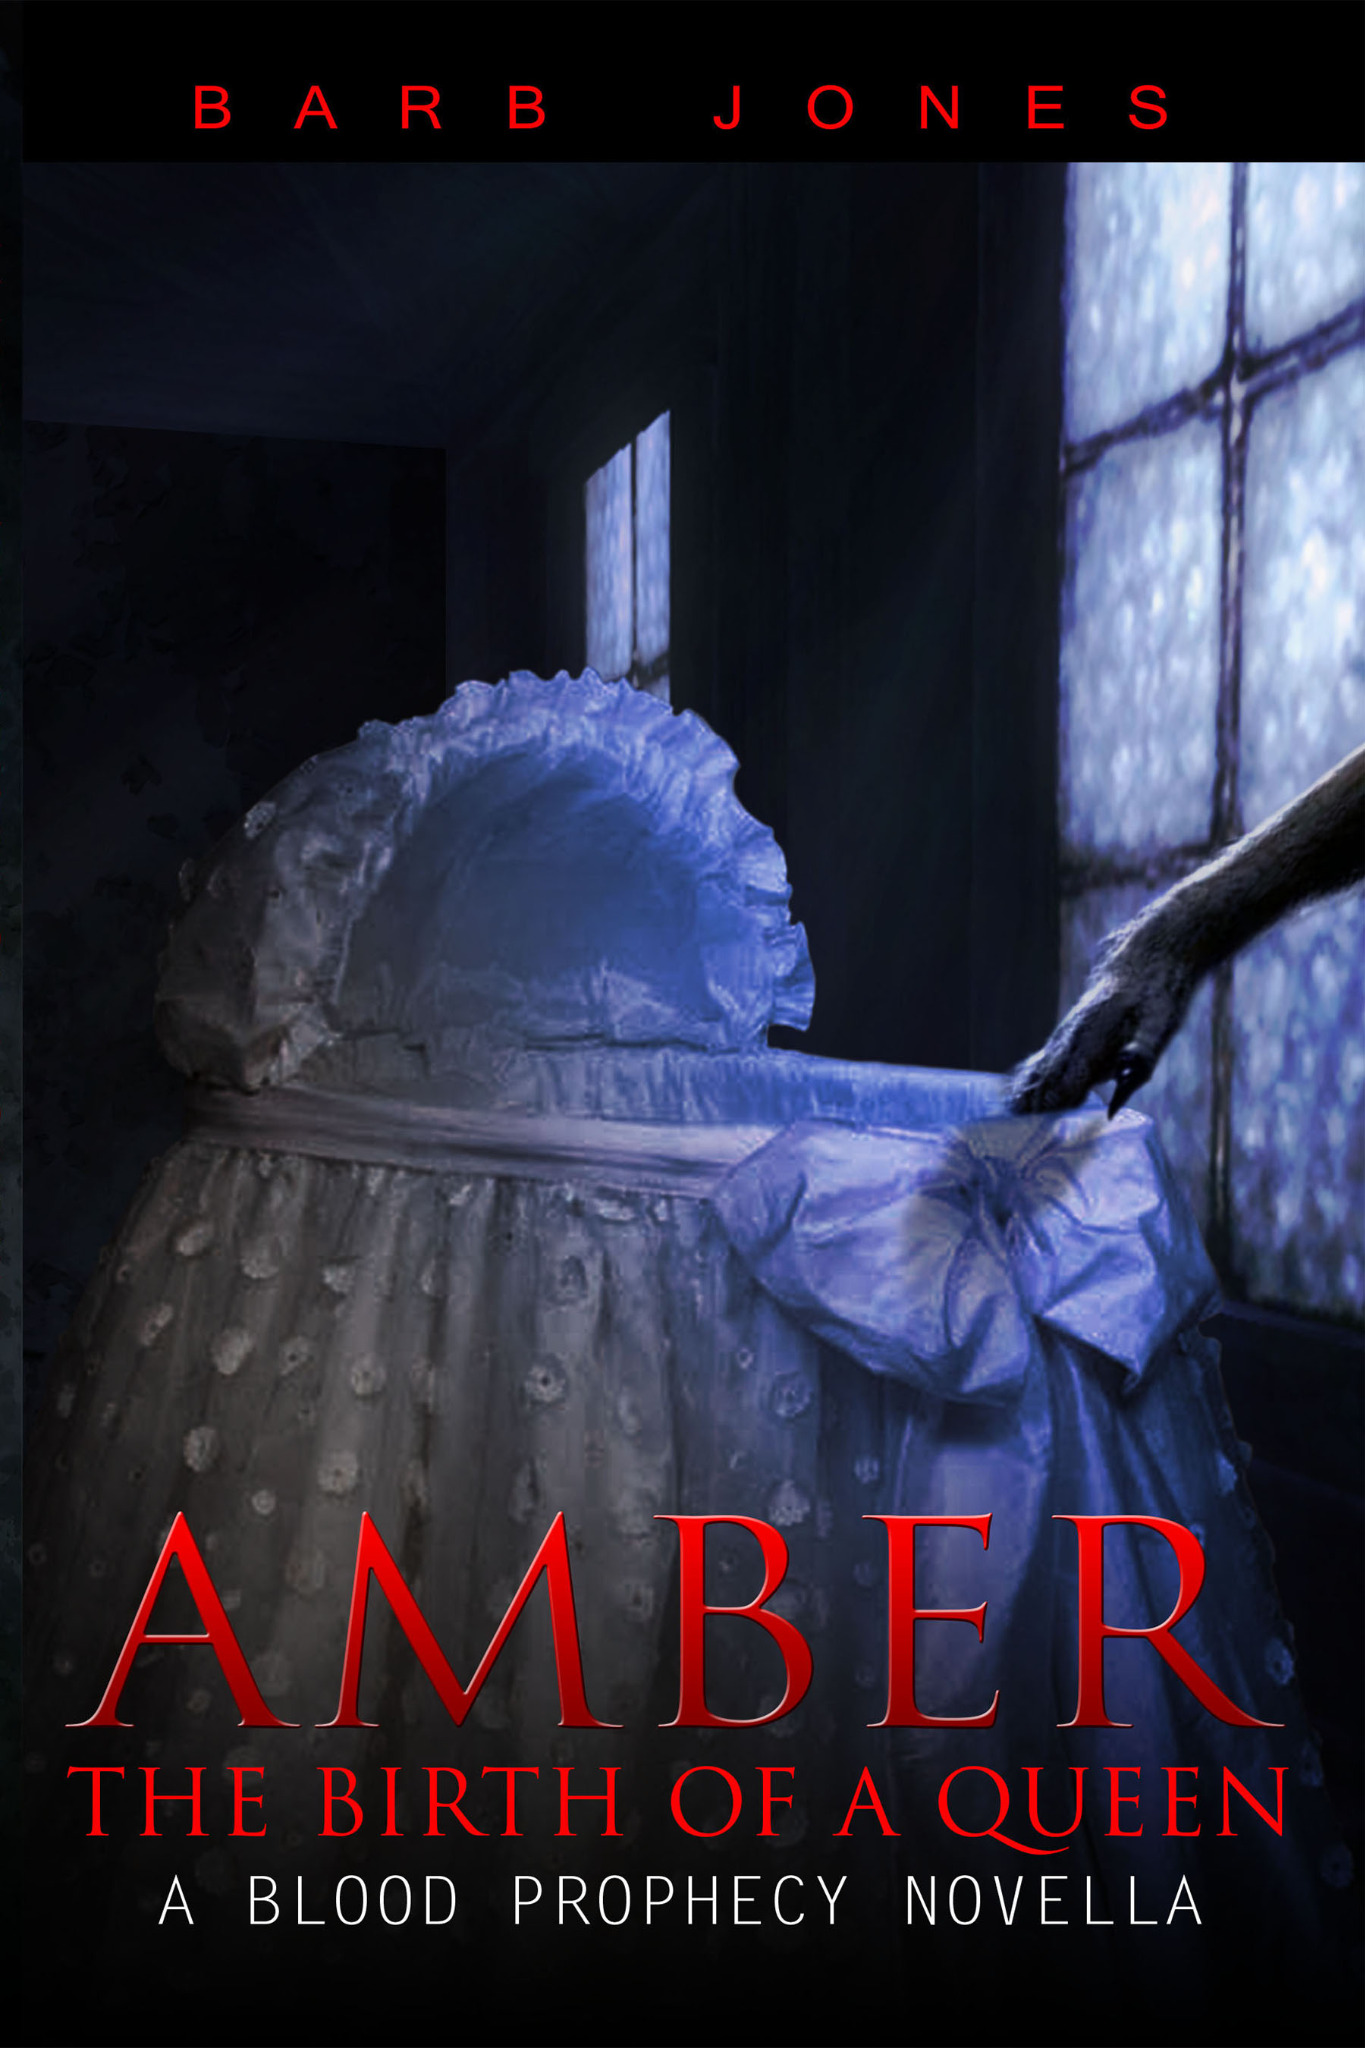 Amber: The Birth of a Queen - A Blood Prophecy Novella